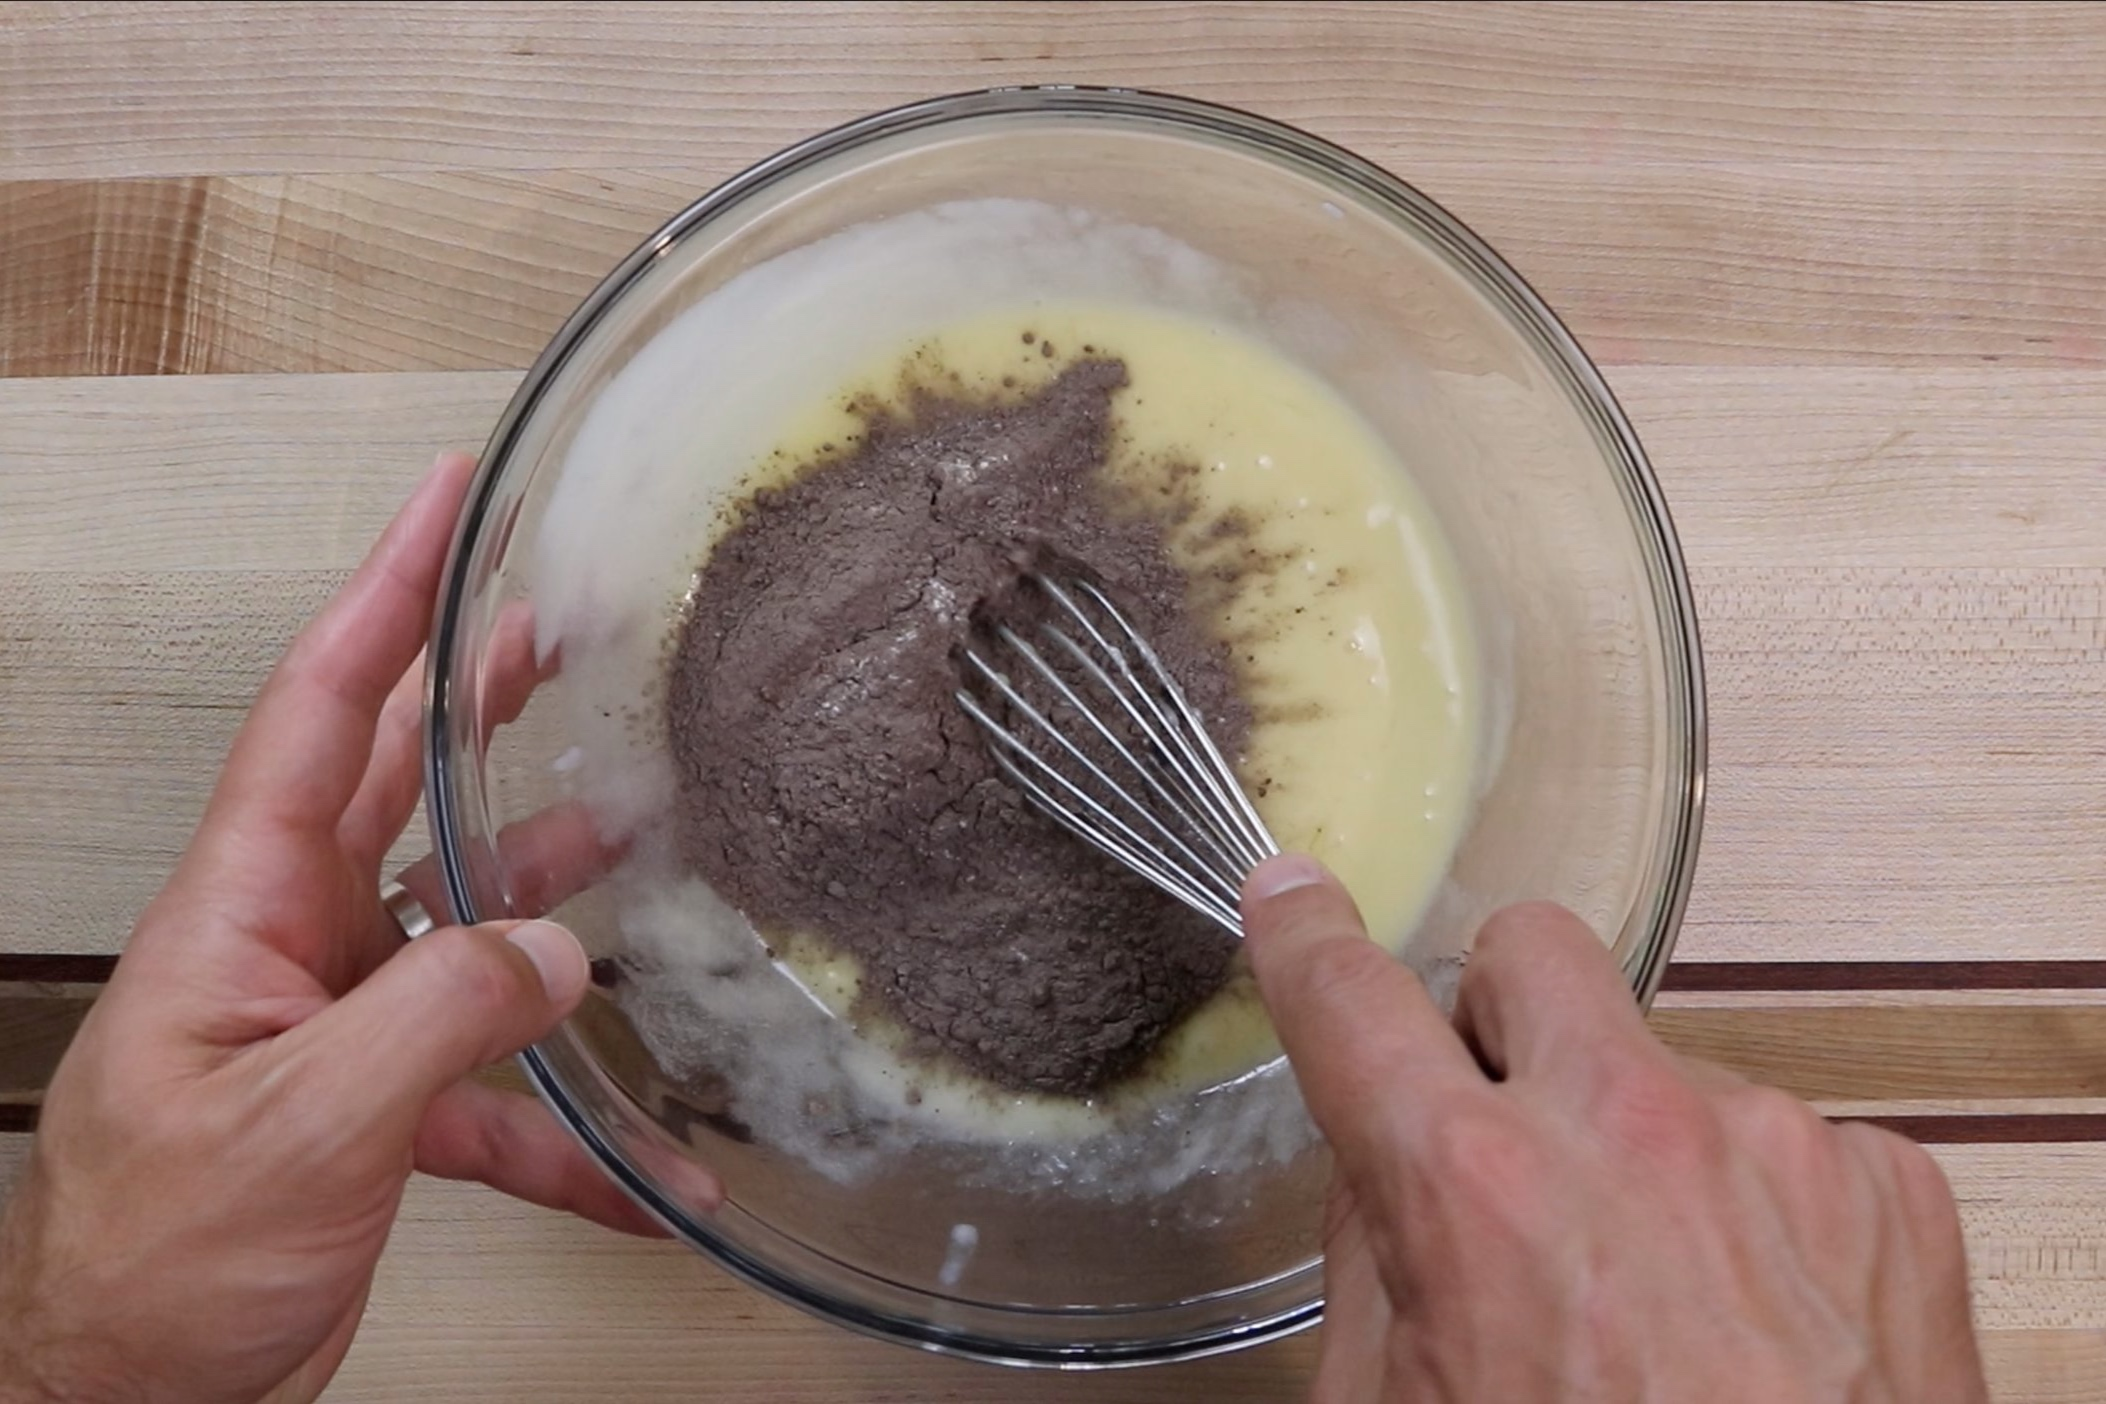 5. Slowly add the flour mixture to the wet mixture. Mix until just combined. Do not overmix. -